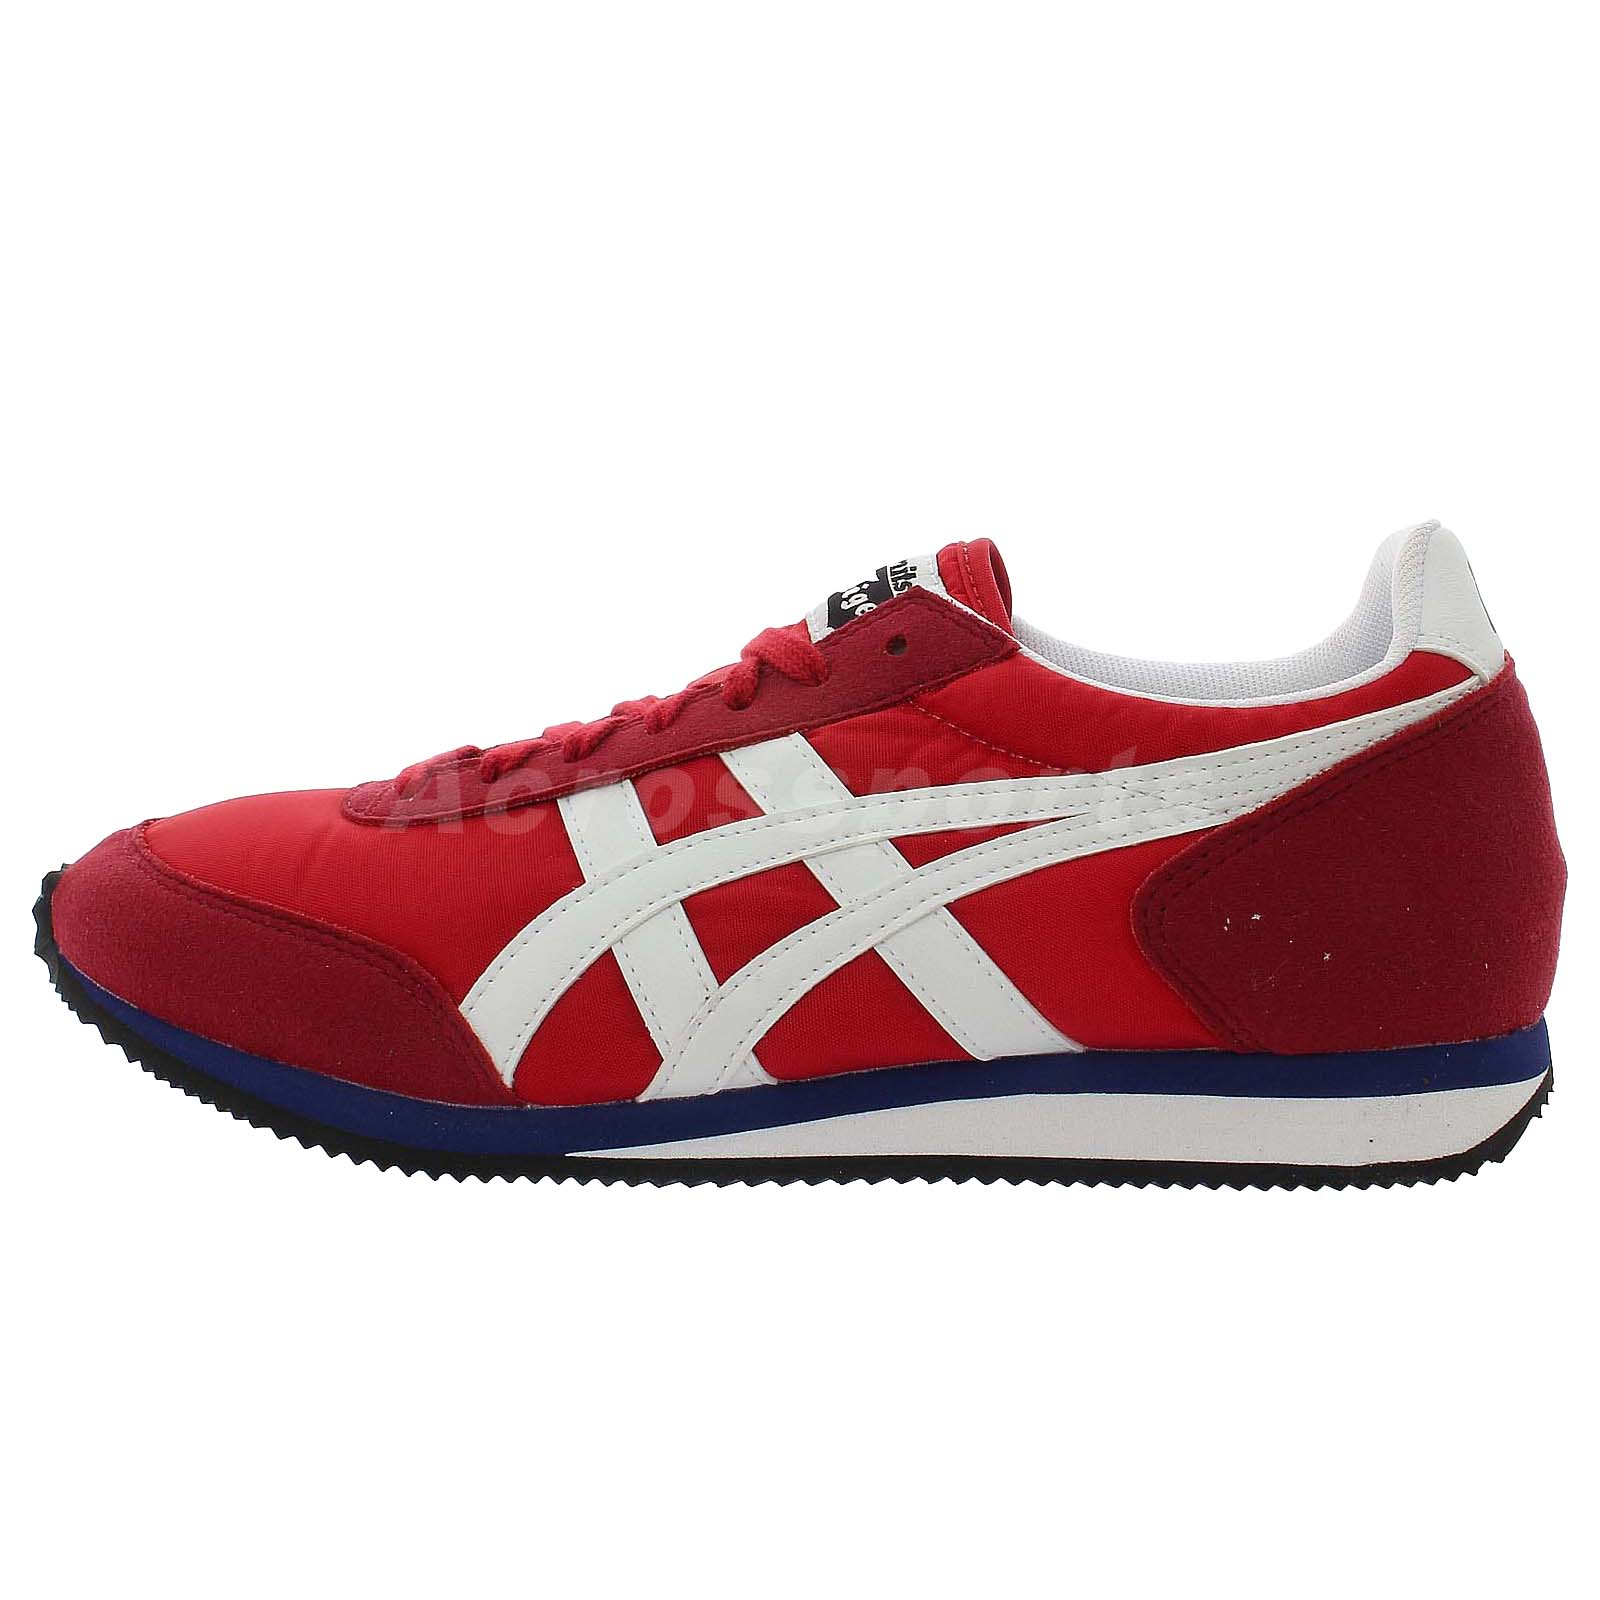 nouveau style 408f6 05ae5 Old School Shoes: Asics Retro Sneakers